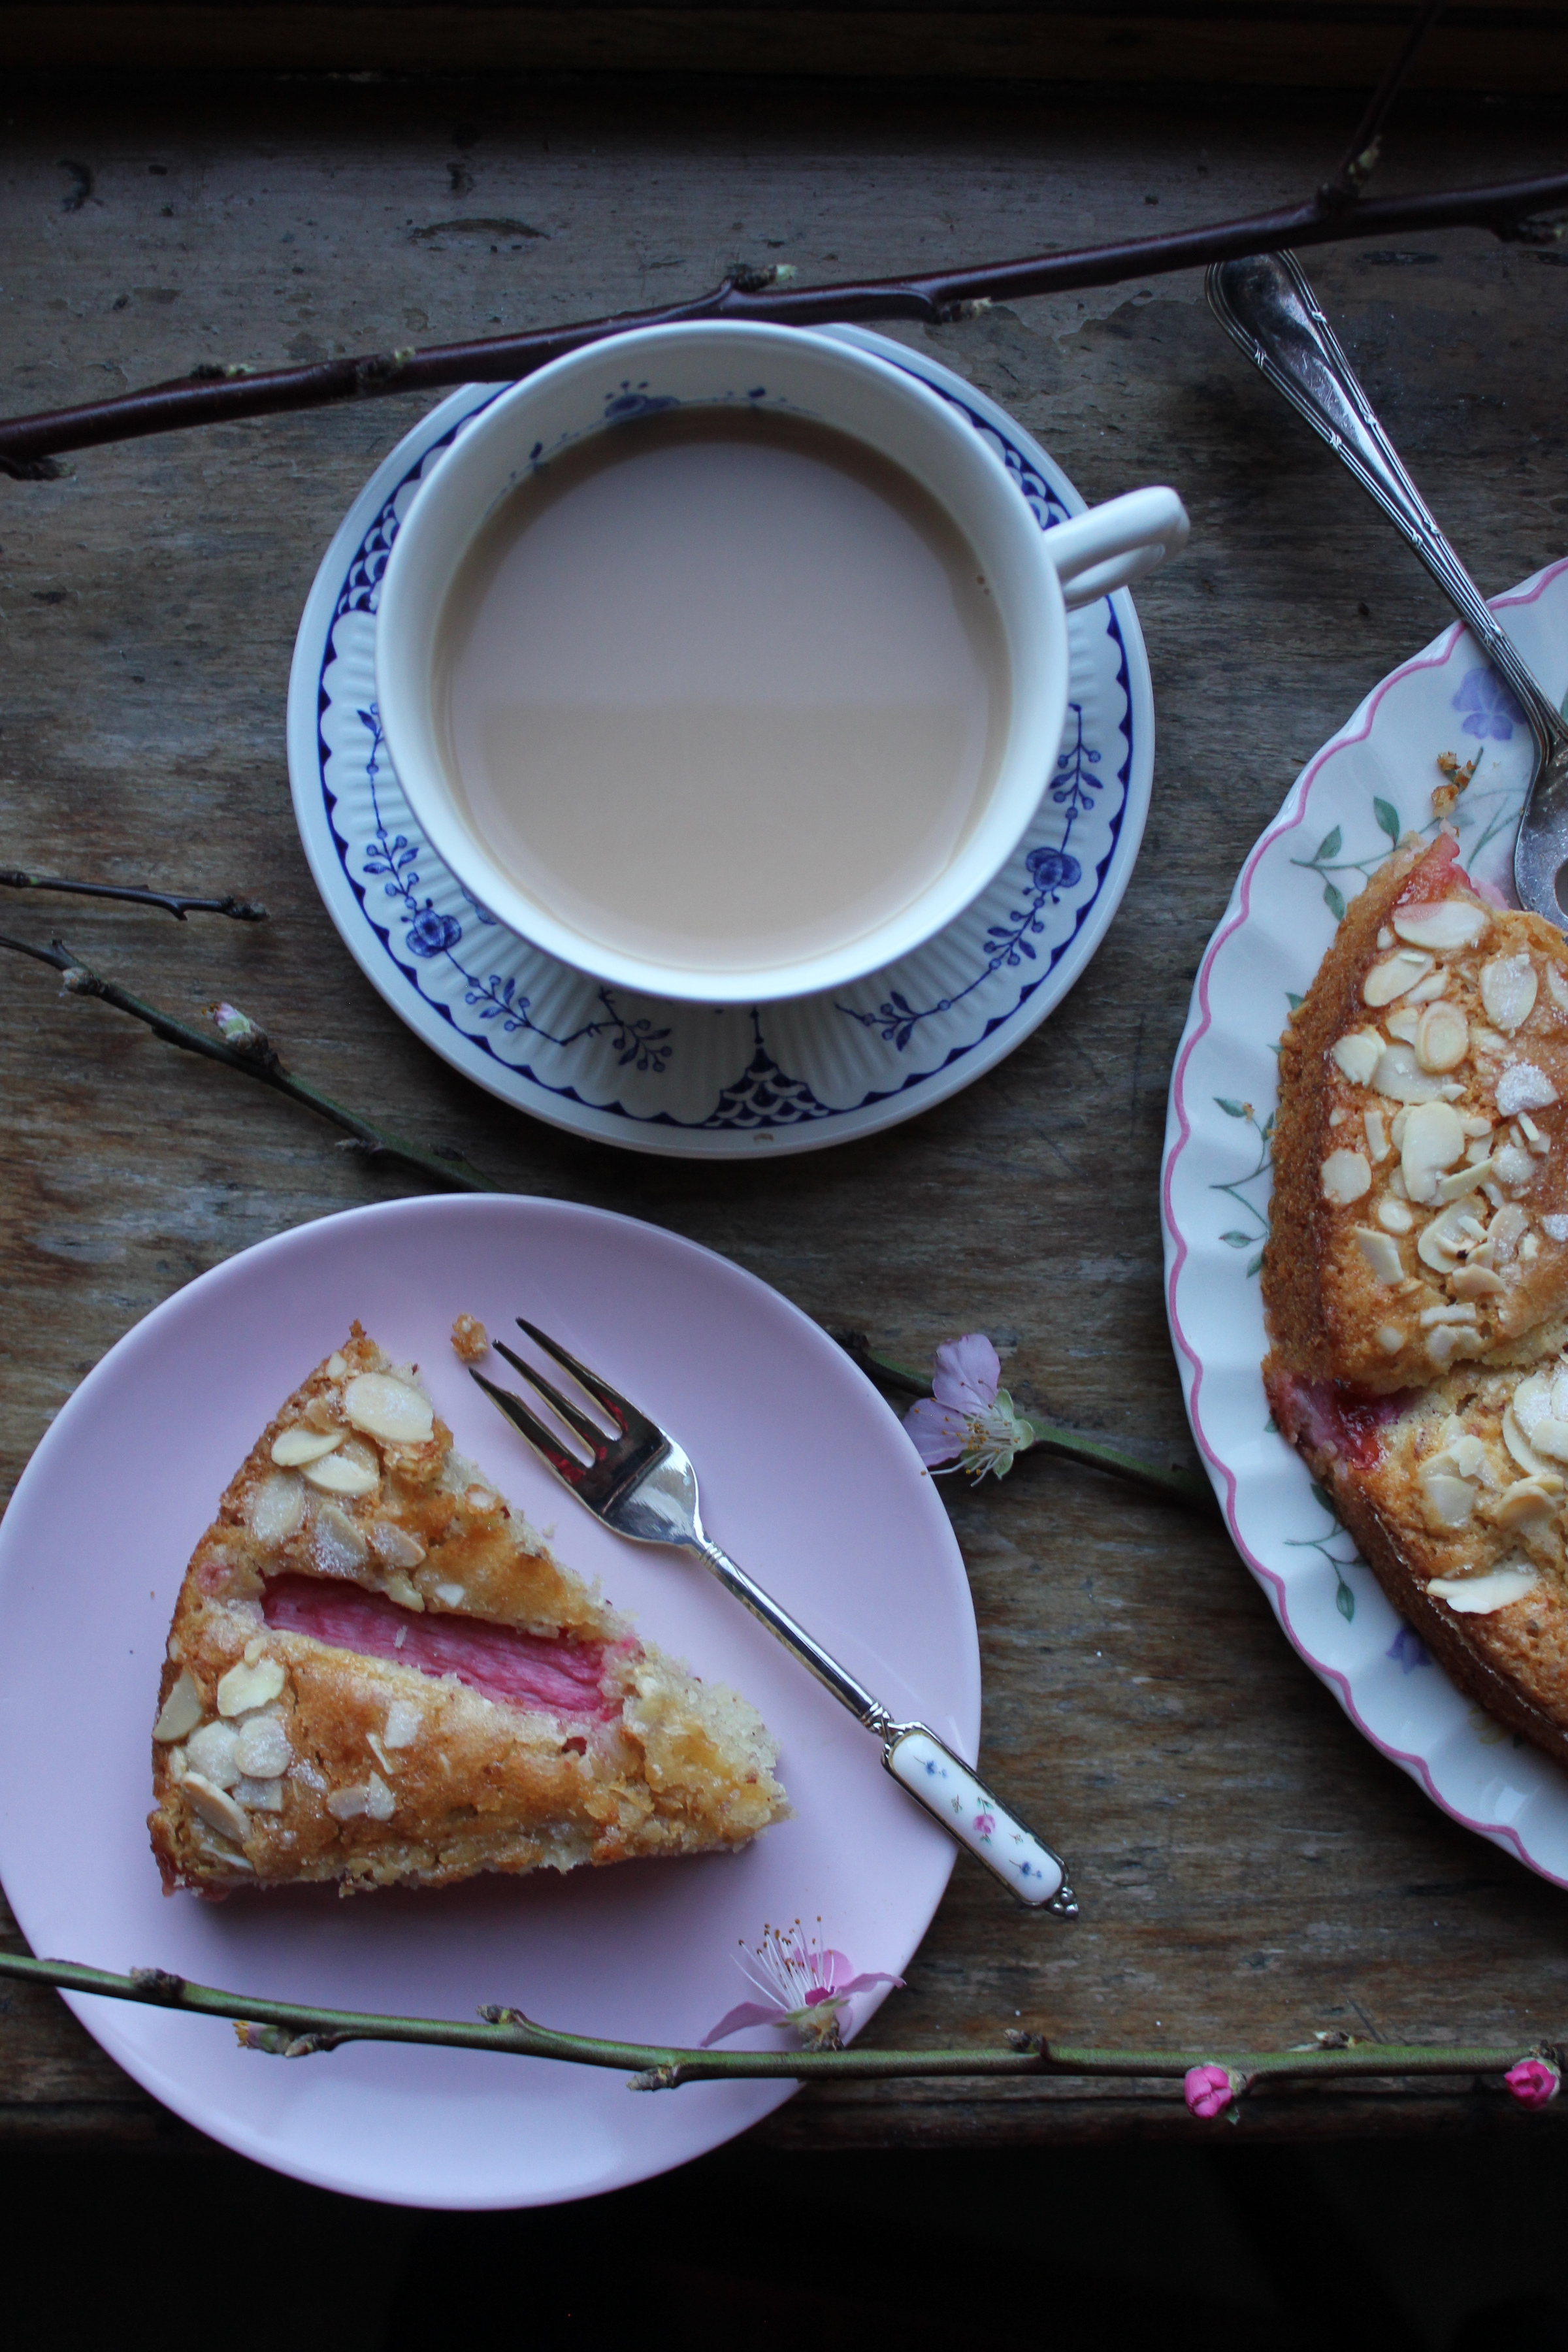 Rhubarb and almond cake